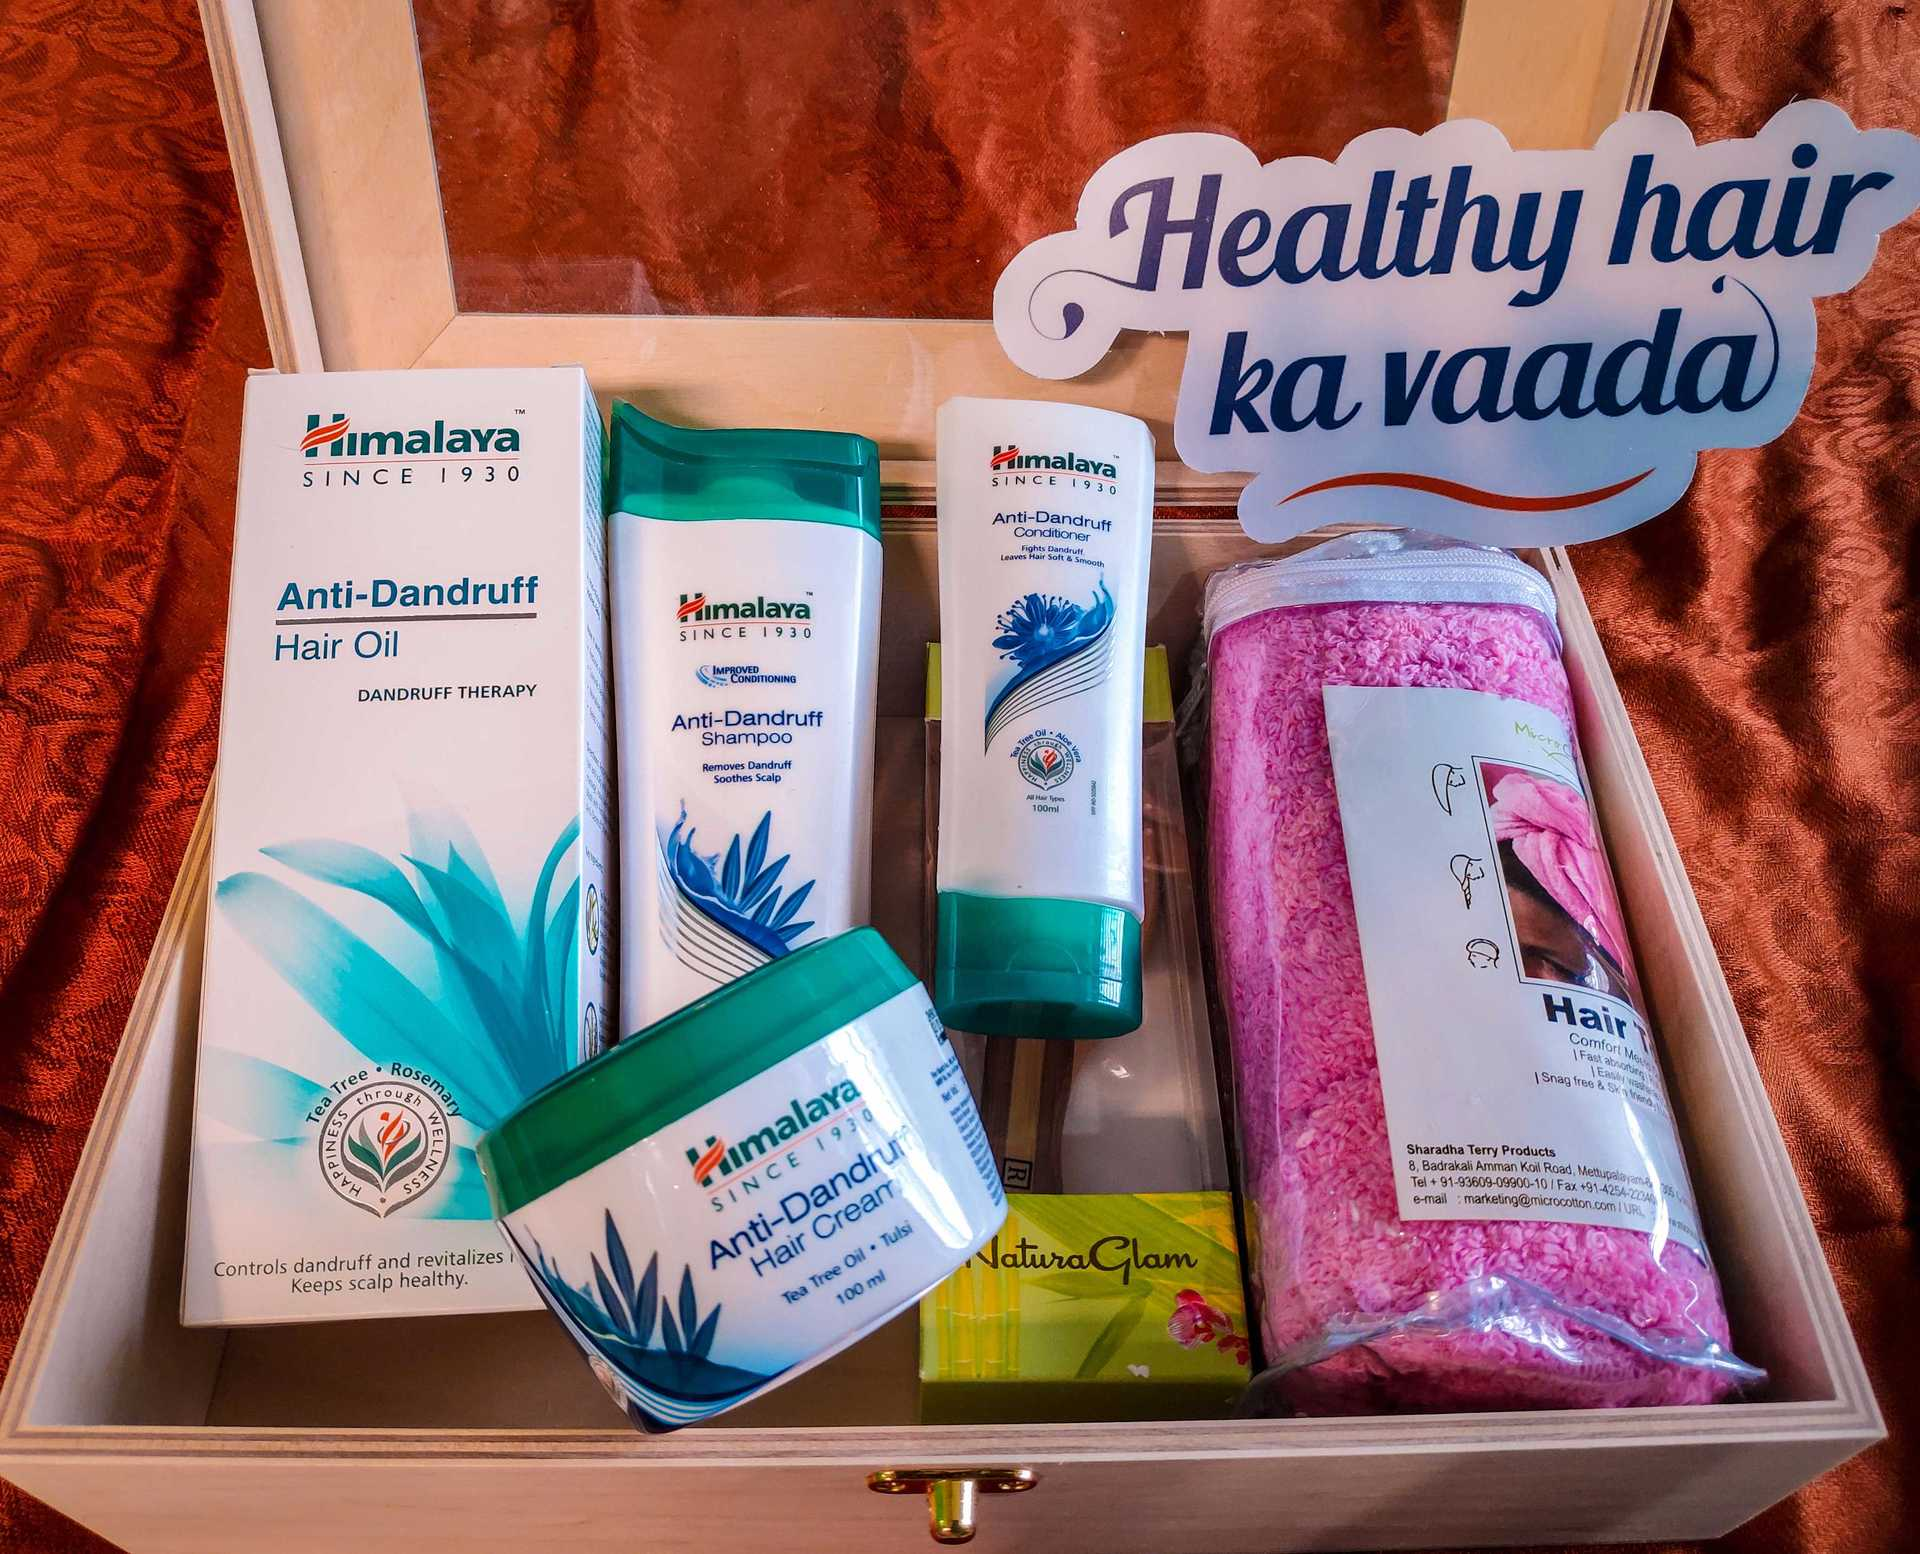 #4FabulousHair : Himalaya Anti-Dandruff Range Review image